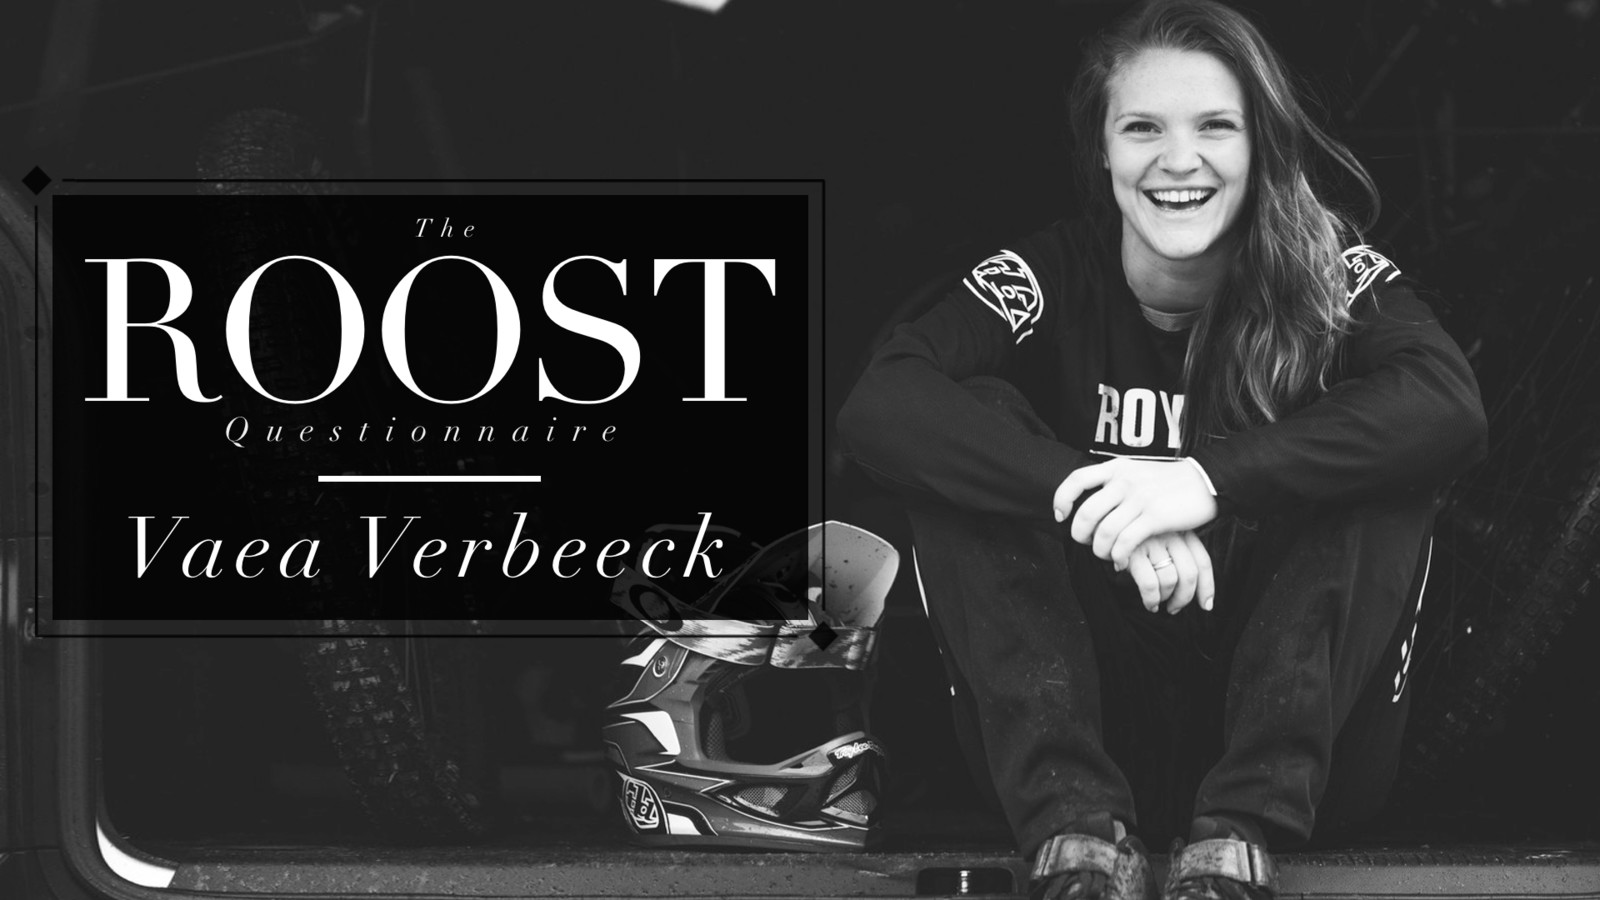 The ROOST Questionnaire #8, Vaea Verbeeck